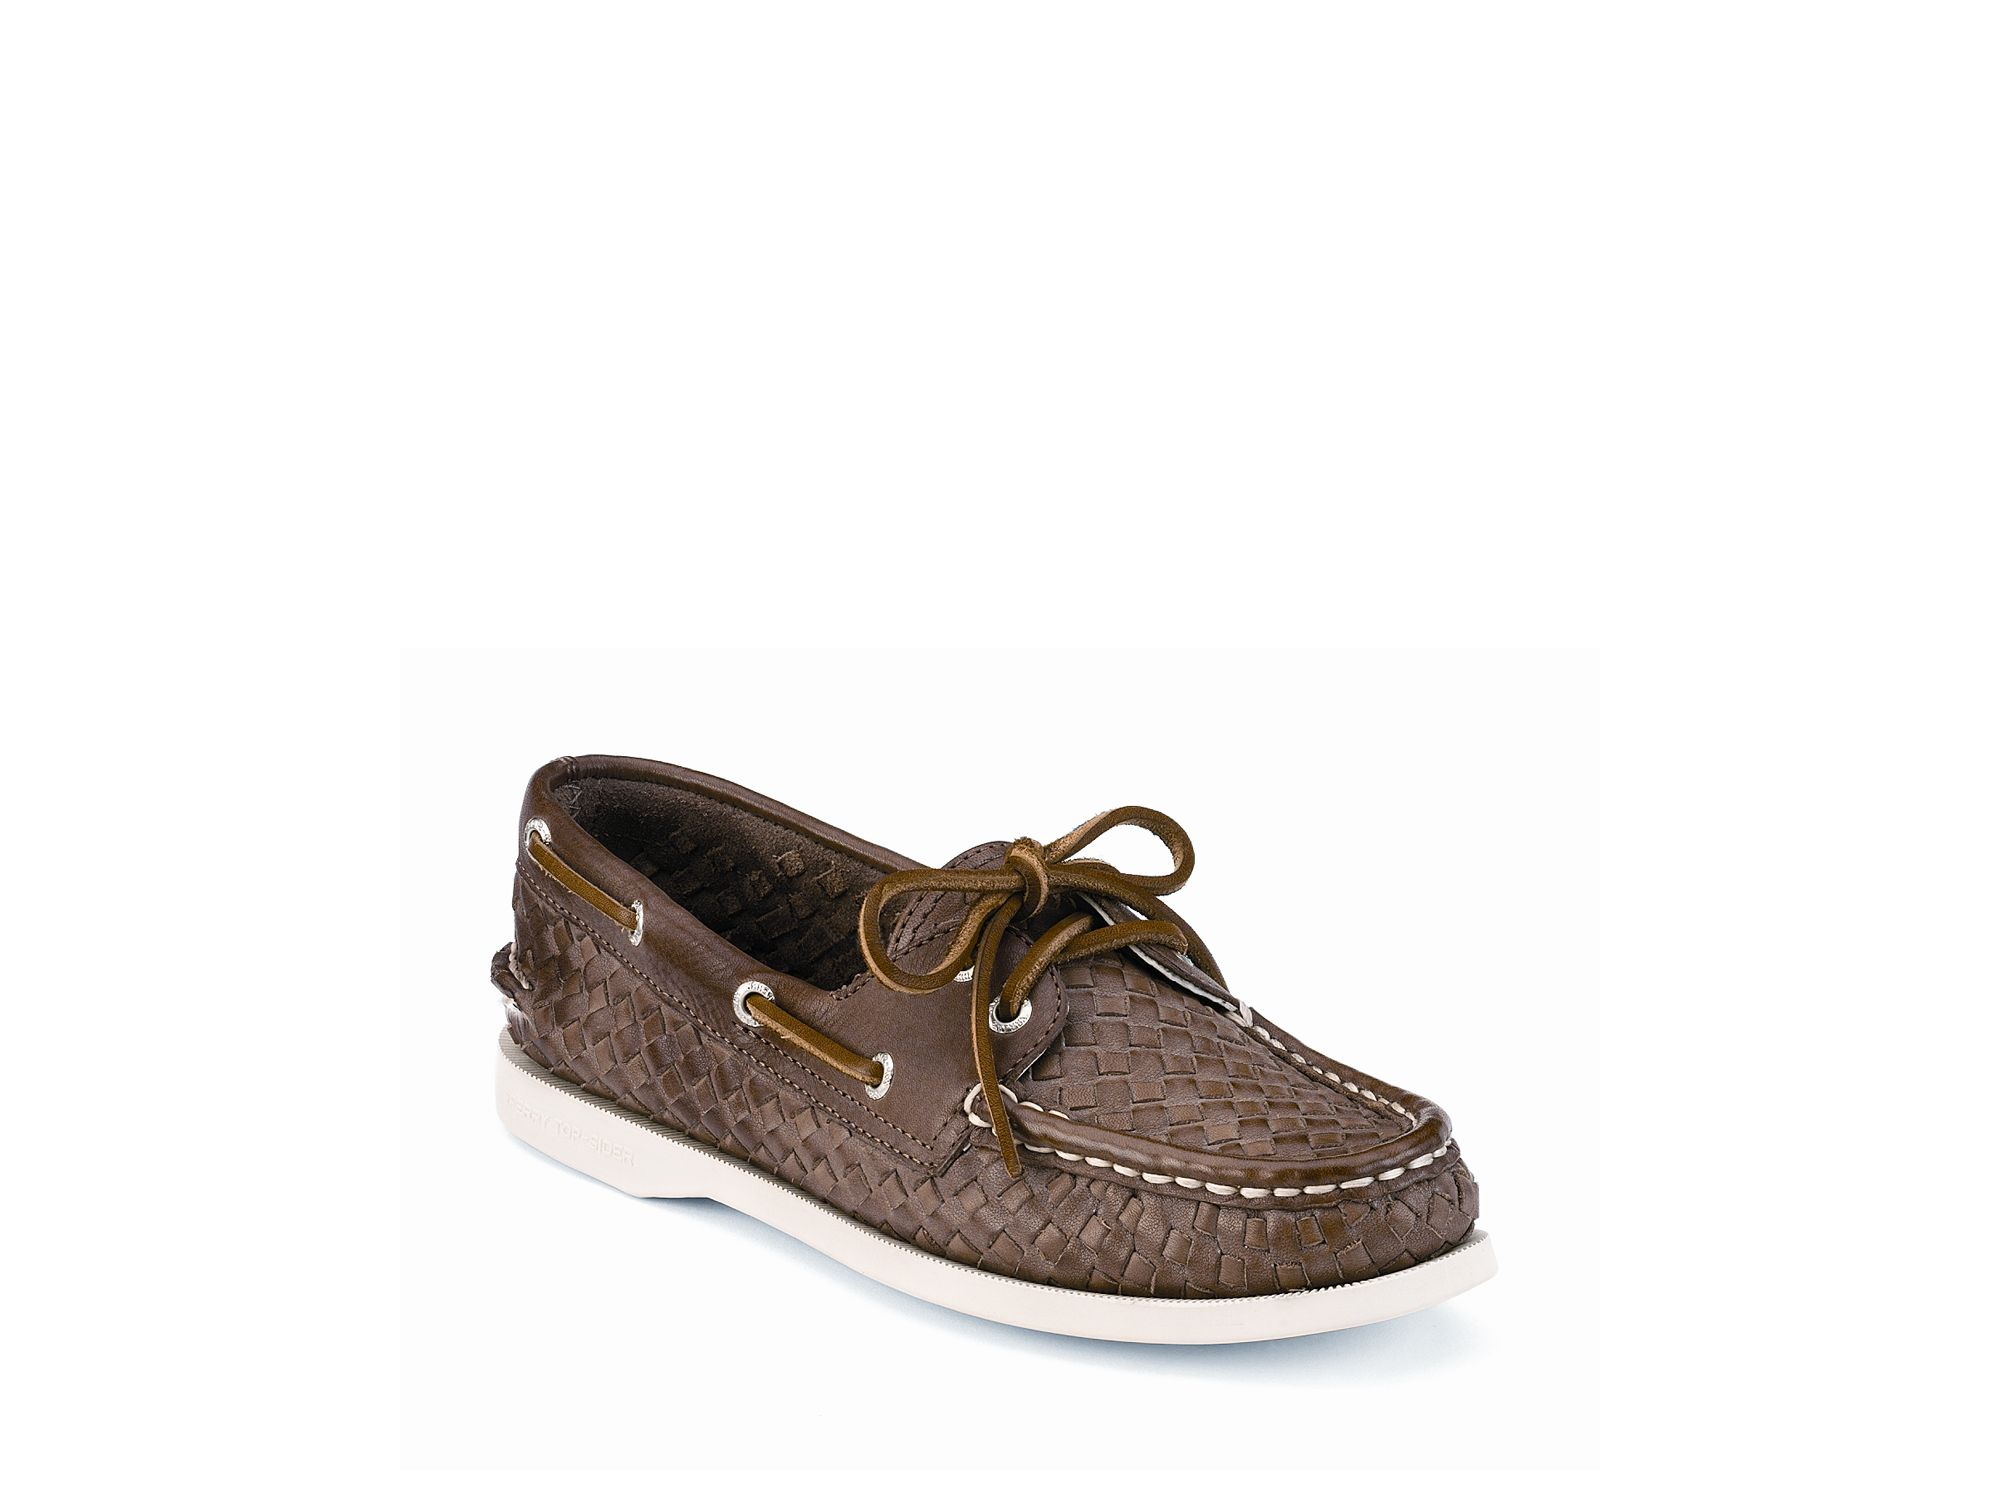 Sperry Woven Leather Boat Shoe